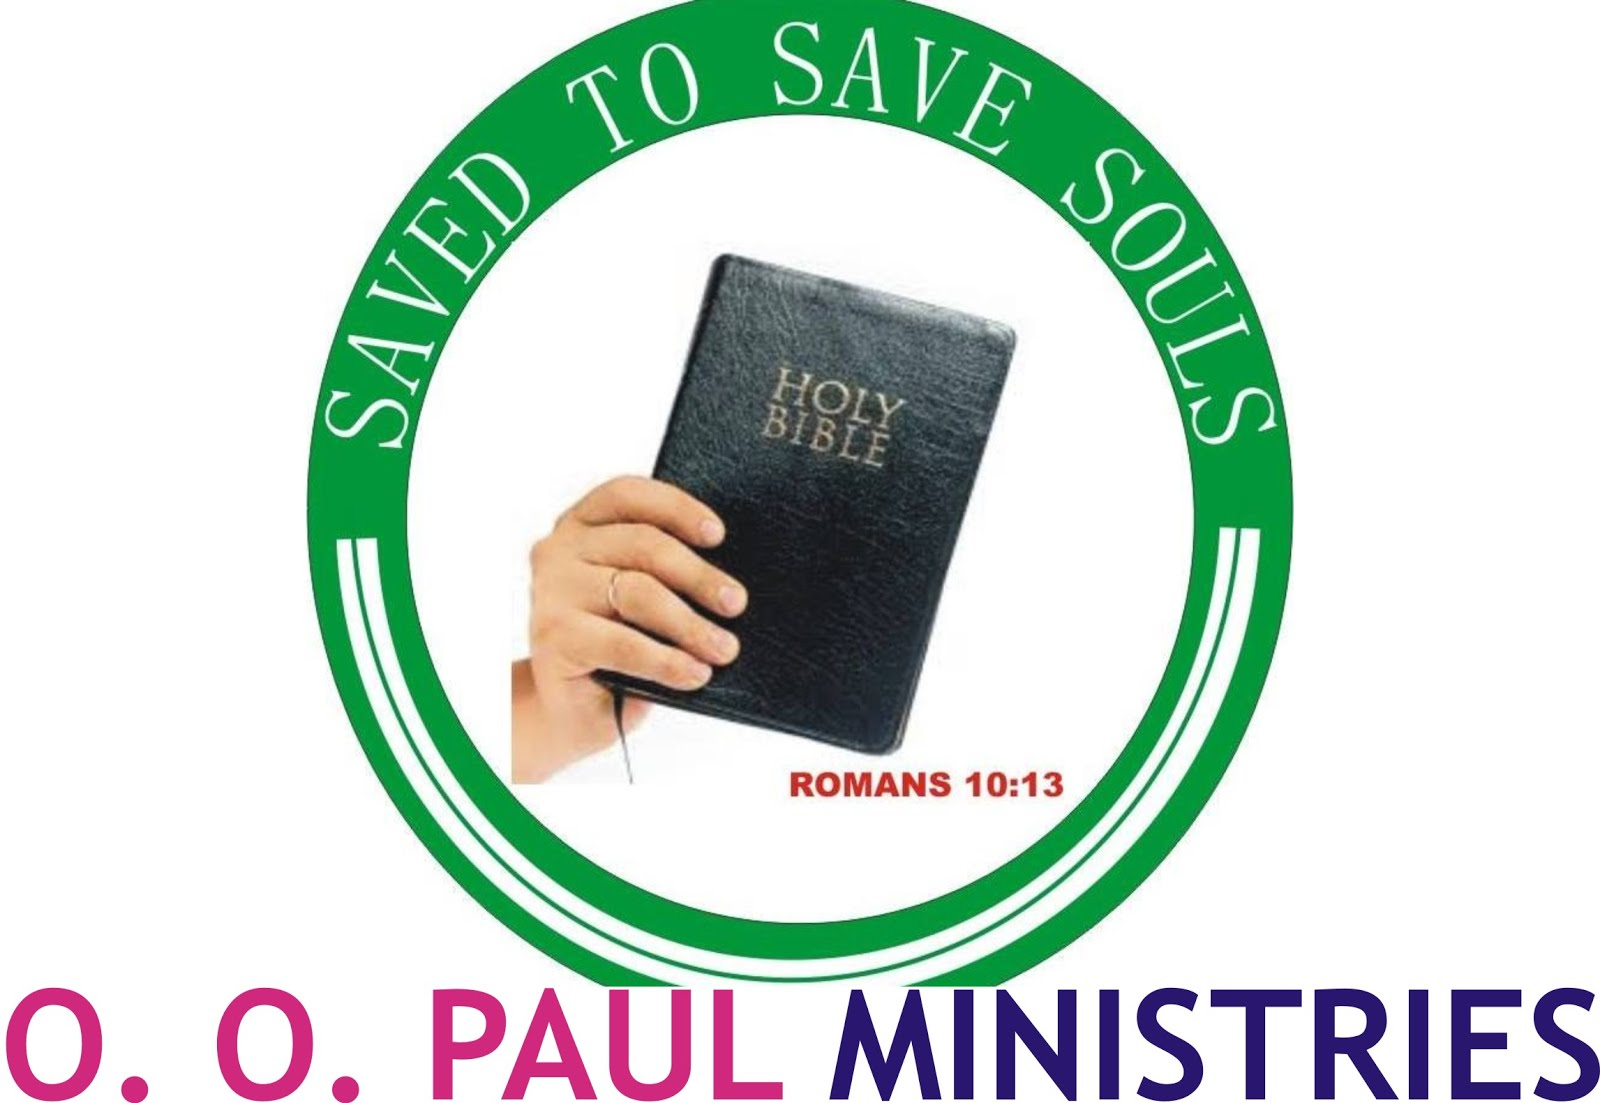 O. O. Paul Ministries